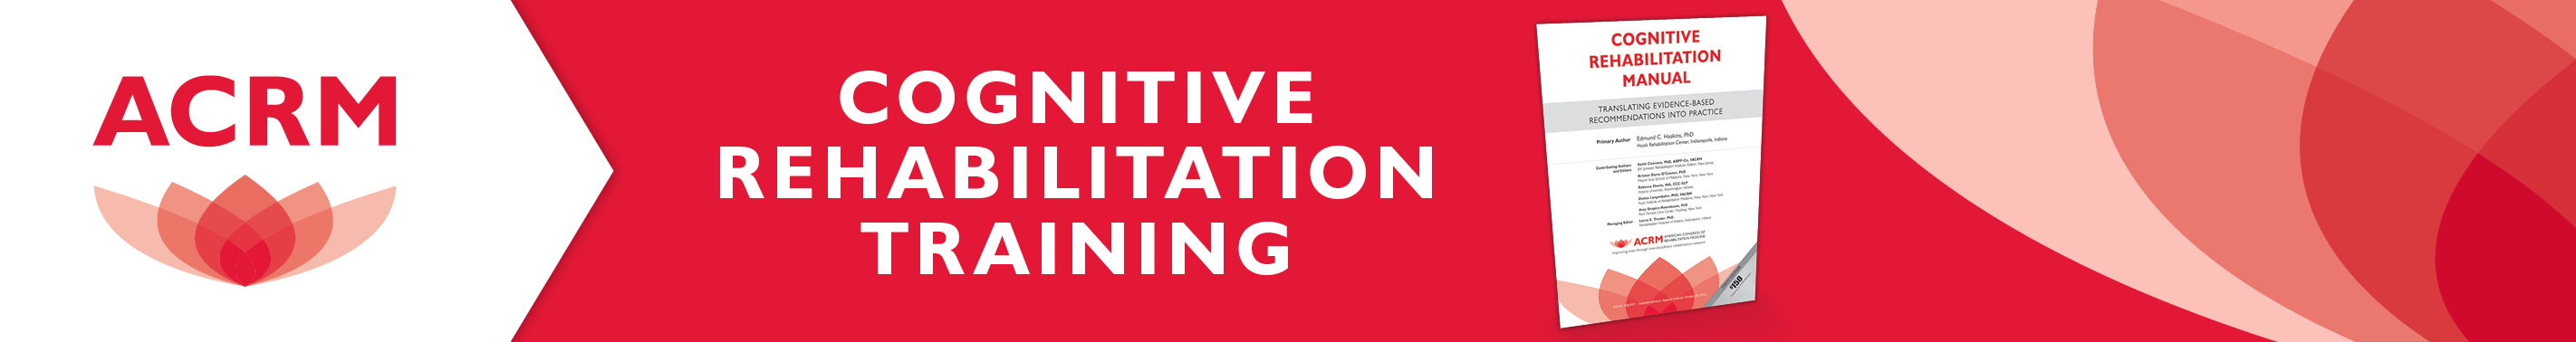 ACRM Cognitive Rehabilitation Training